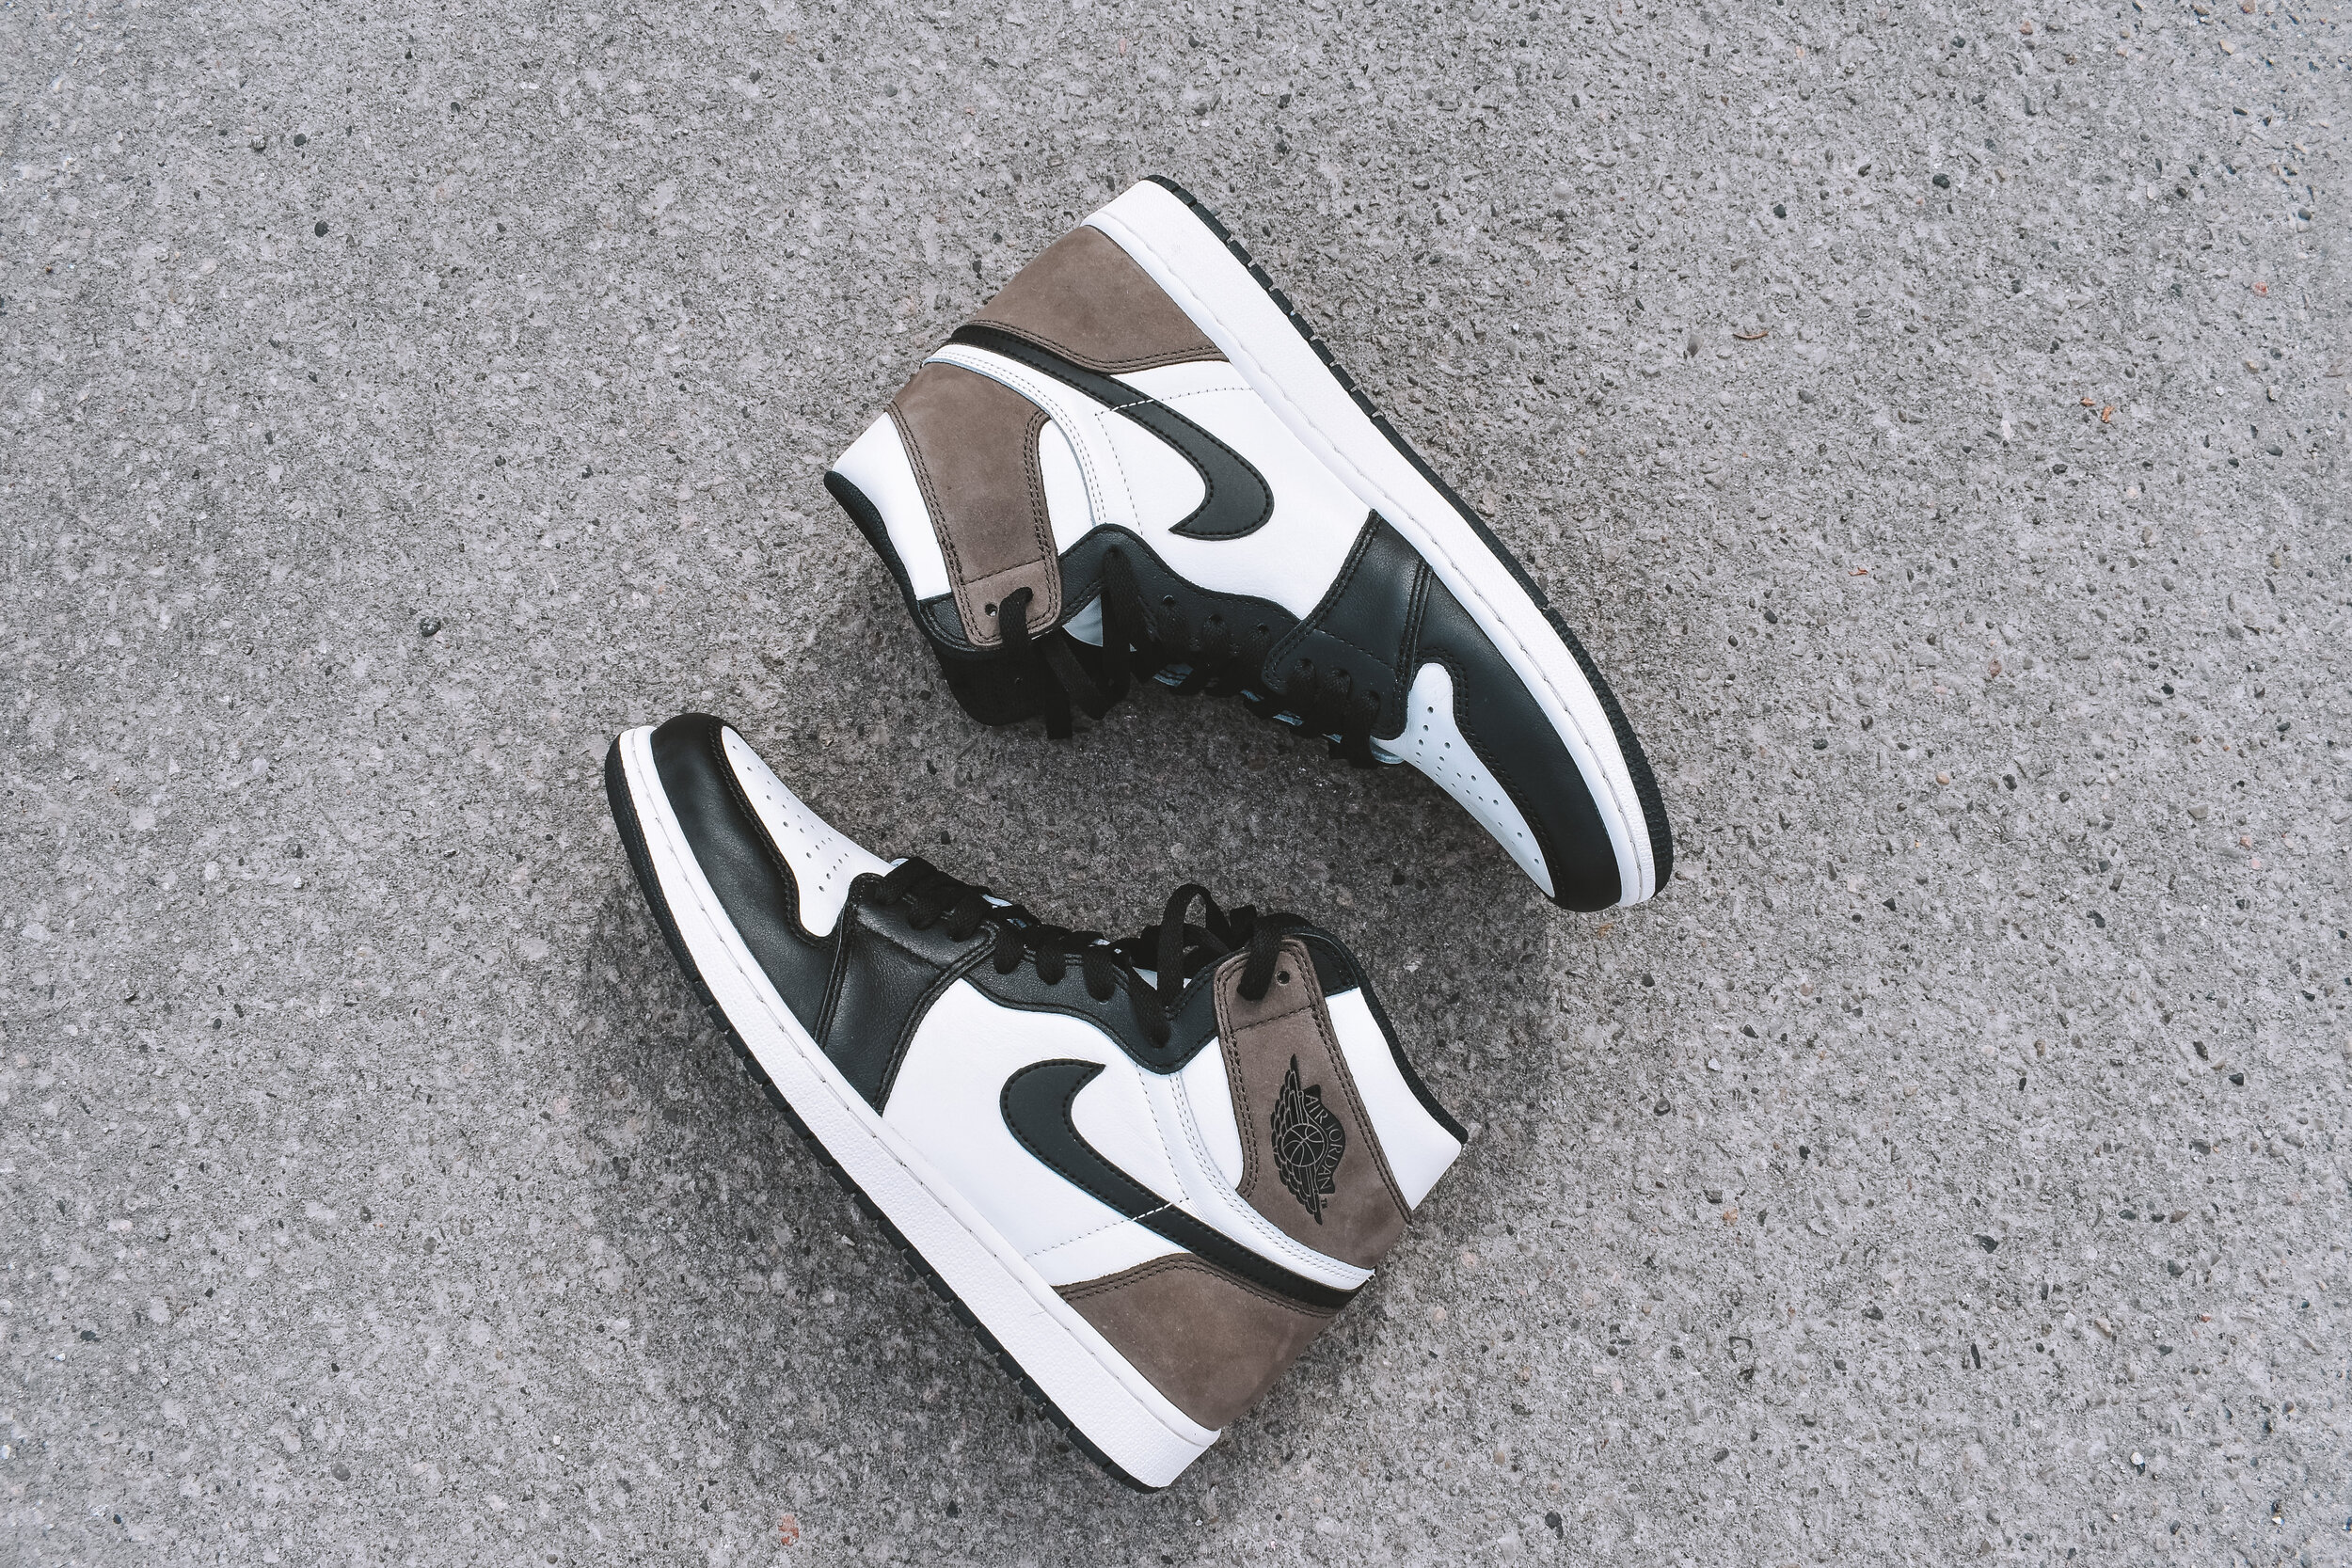 Jordan 1 Dark Mocha , a versatile, clean shoe that can match almost every outfit because of its color scheme // FLEUR BOOMSMA